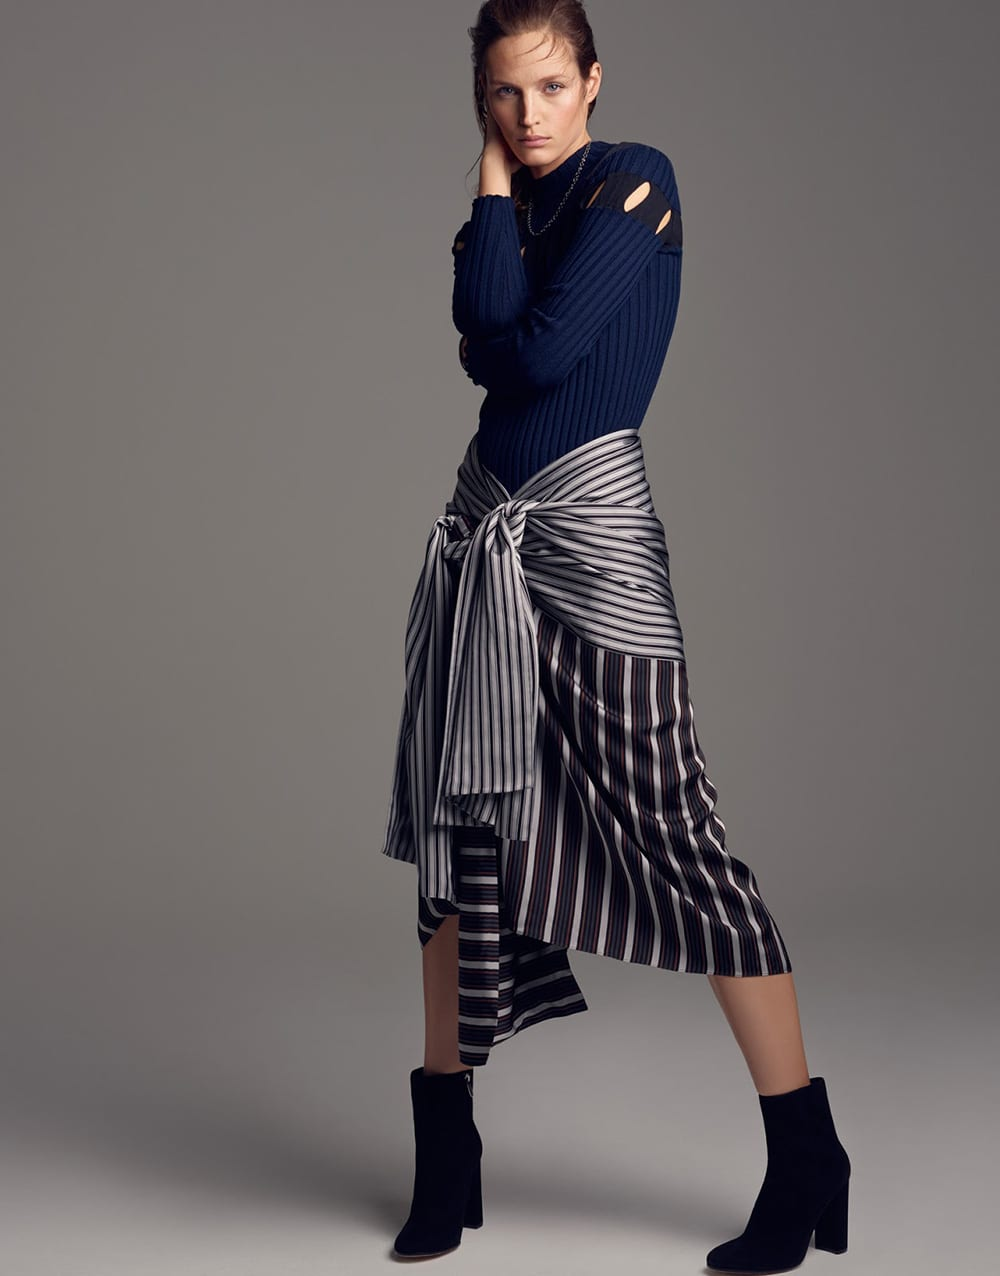 Style&Minimalism | Editorials | The Edit | Modern Grunge | Come As You Are with Vivien Solari